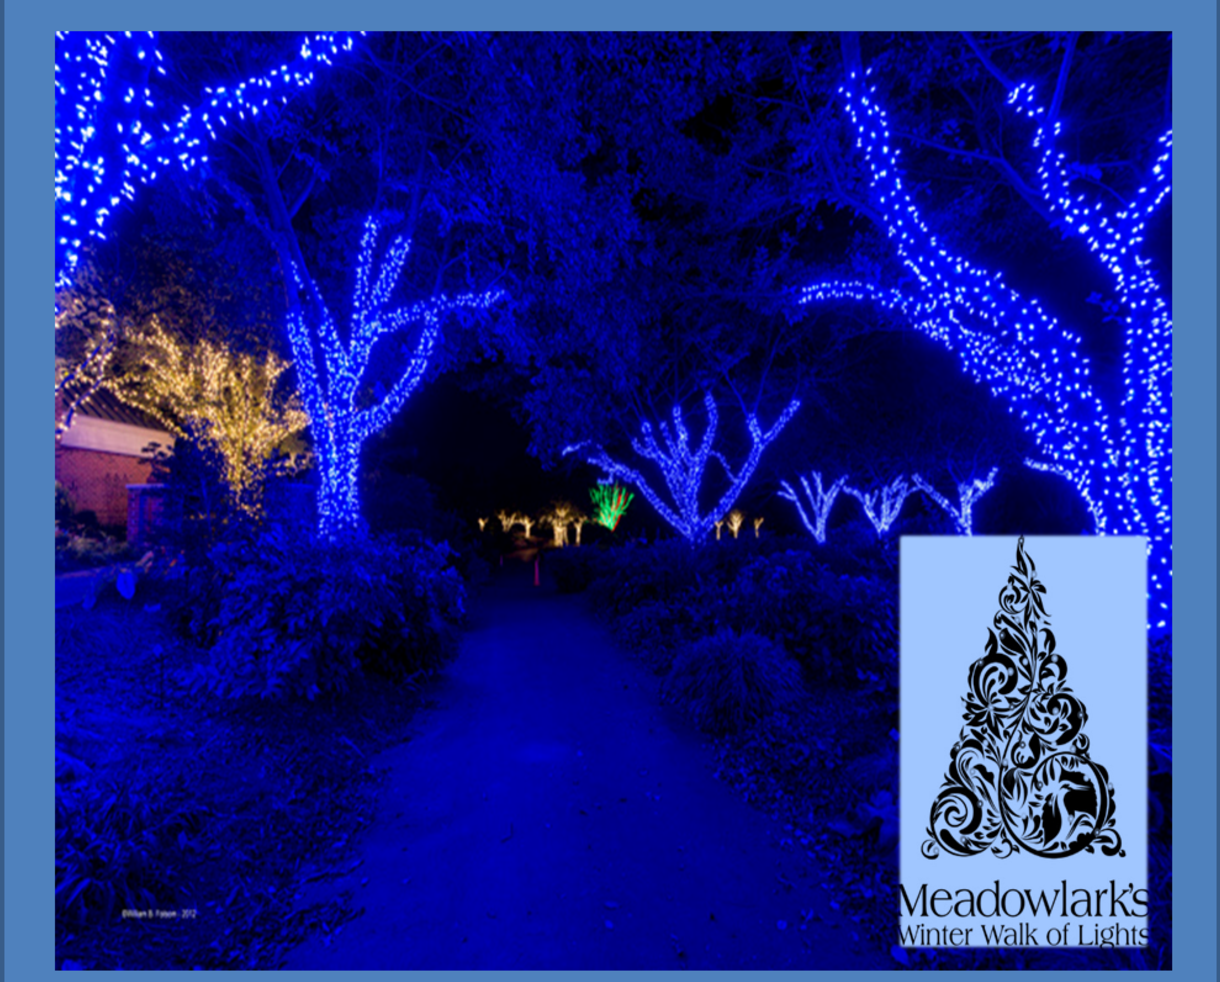 $12 for Meadowlark's Winter Walk of Lights Weekday Adult + Child Ticket - Nov. 19th thru Dec. 6th in Vienna (48% Off)